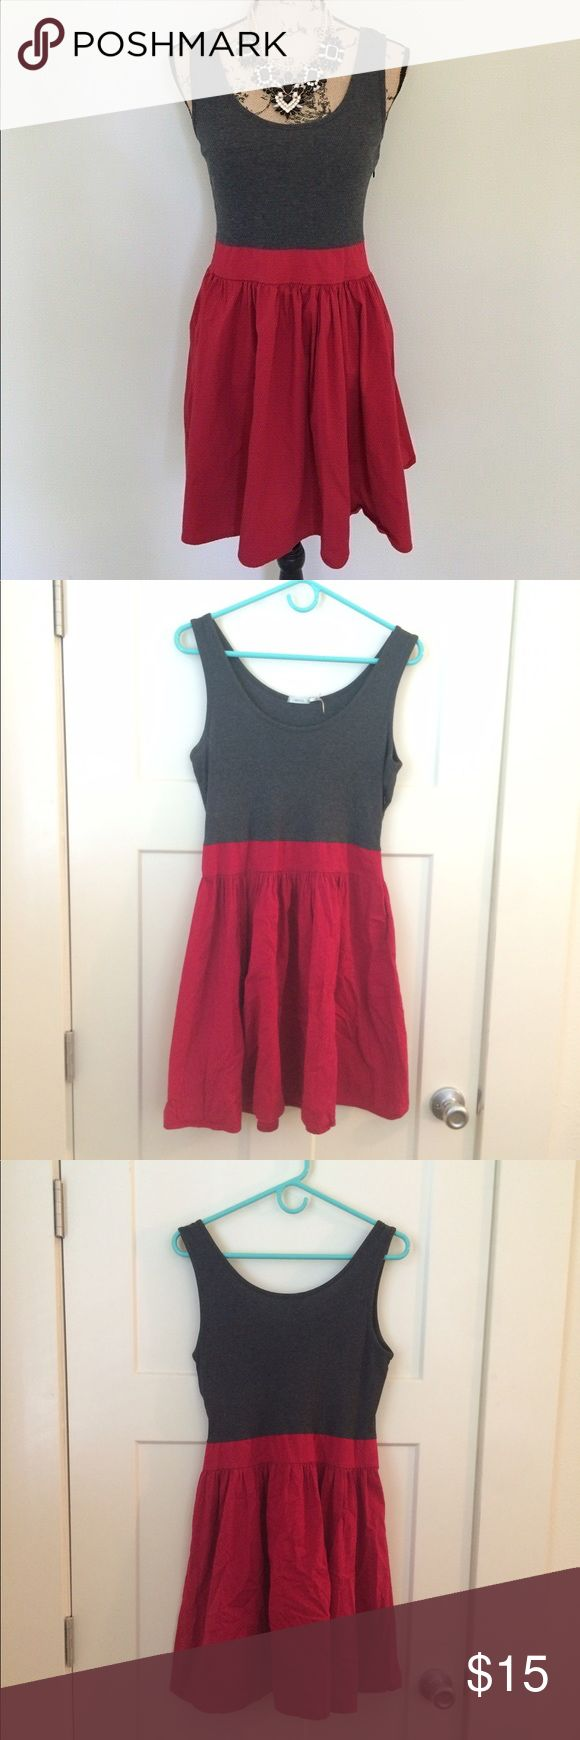 """UO Kimchi Blue Red & Grey Fit and Flare Sundress Made from natural fibers in the USA! Knit, stretchy tank top and stretch cotton skirt. 17"""" bust (unstretched and very stretchy), 16"""" waist (unstretched, slightly stretchy) and 34.5"""" long. Good used condition - pleats have been re-sewn near side seams where they came undone (see photos). Fits TTS. Urban Outfitters Dresses Mini"""